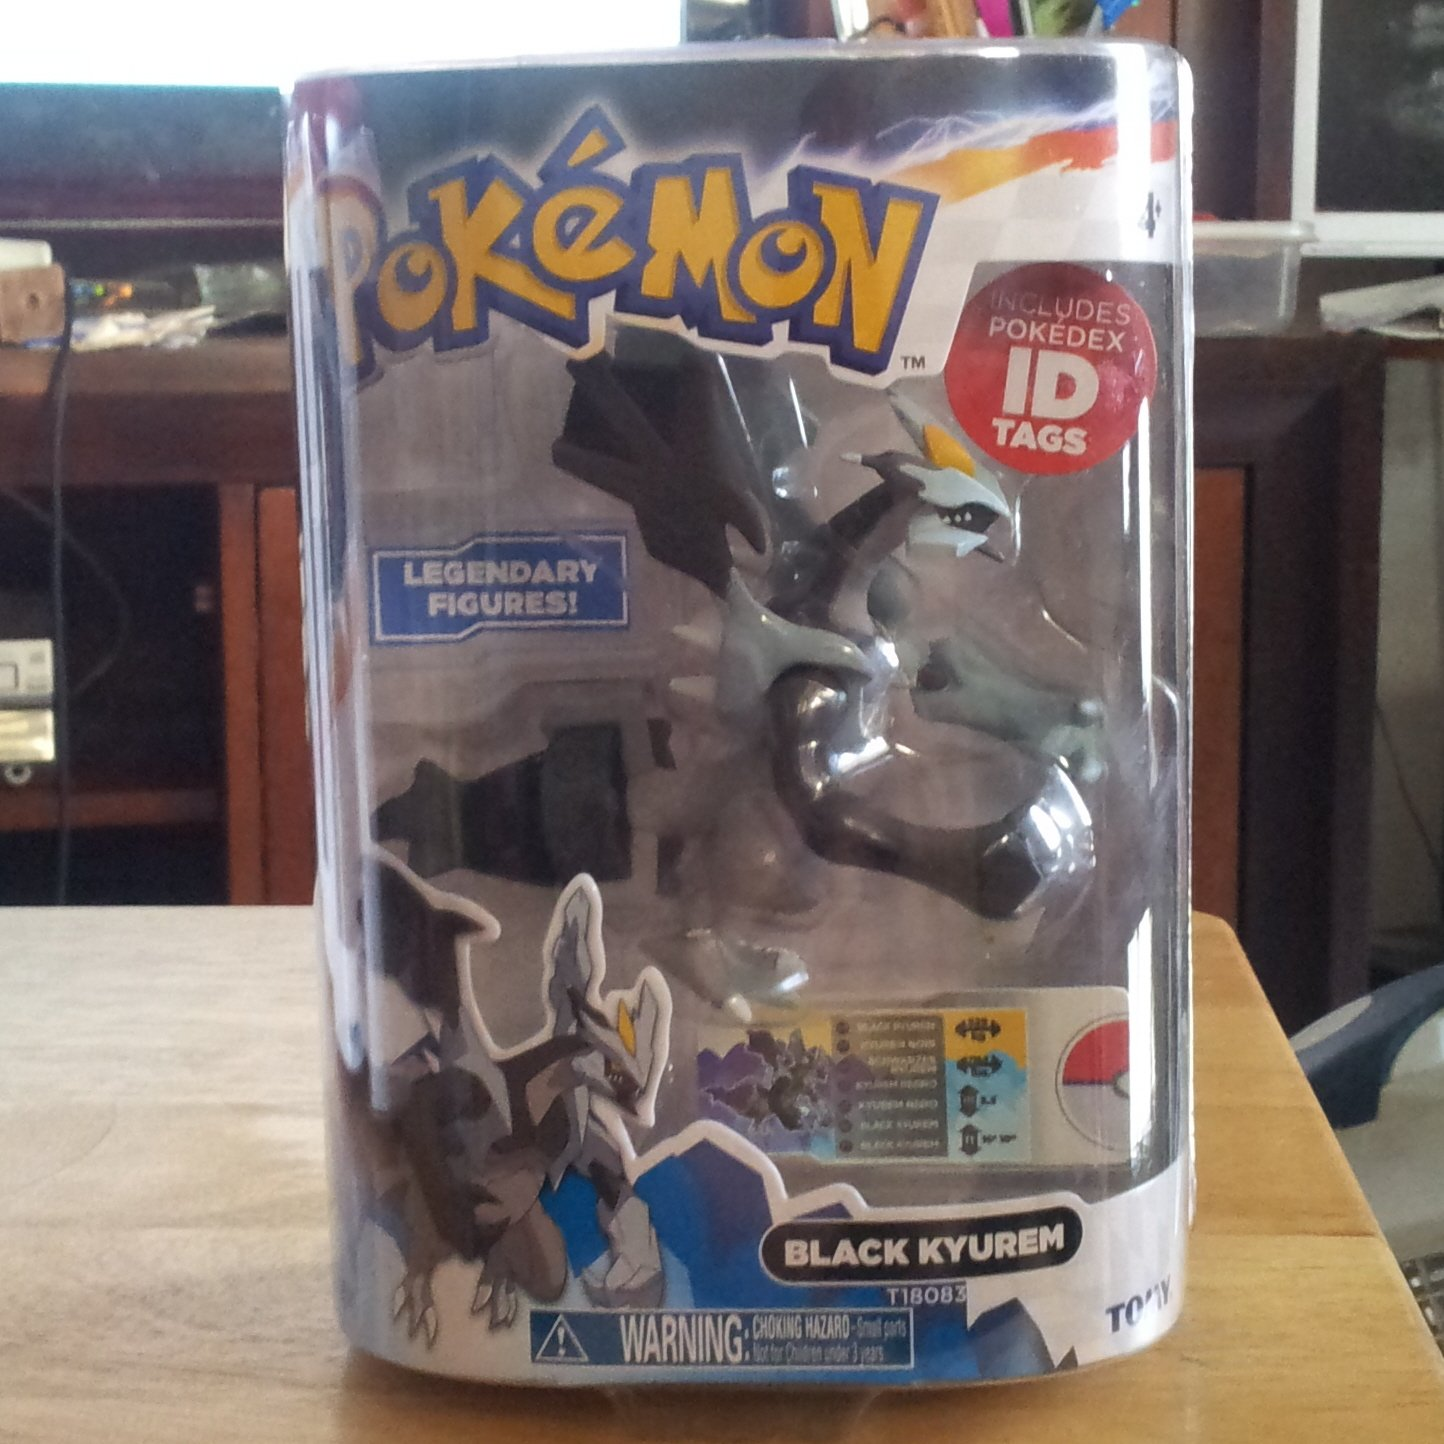 Black Kyurem 2013 Pokemon Legendary Figure Series 1